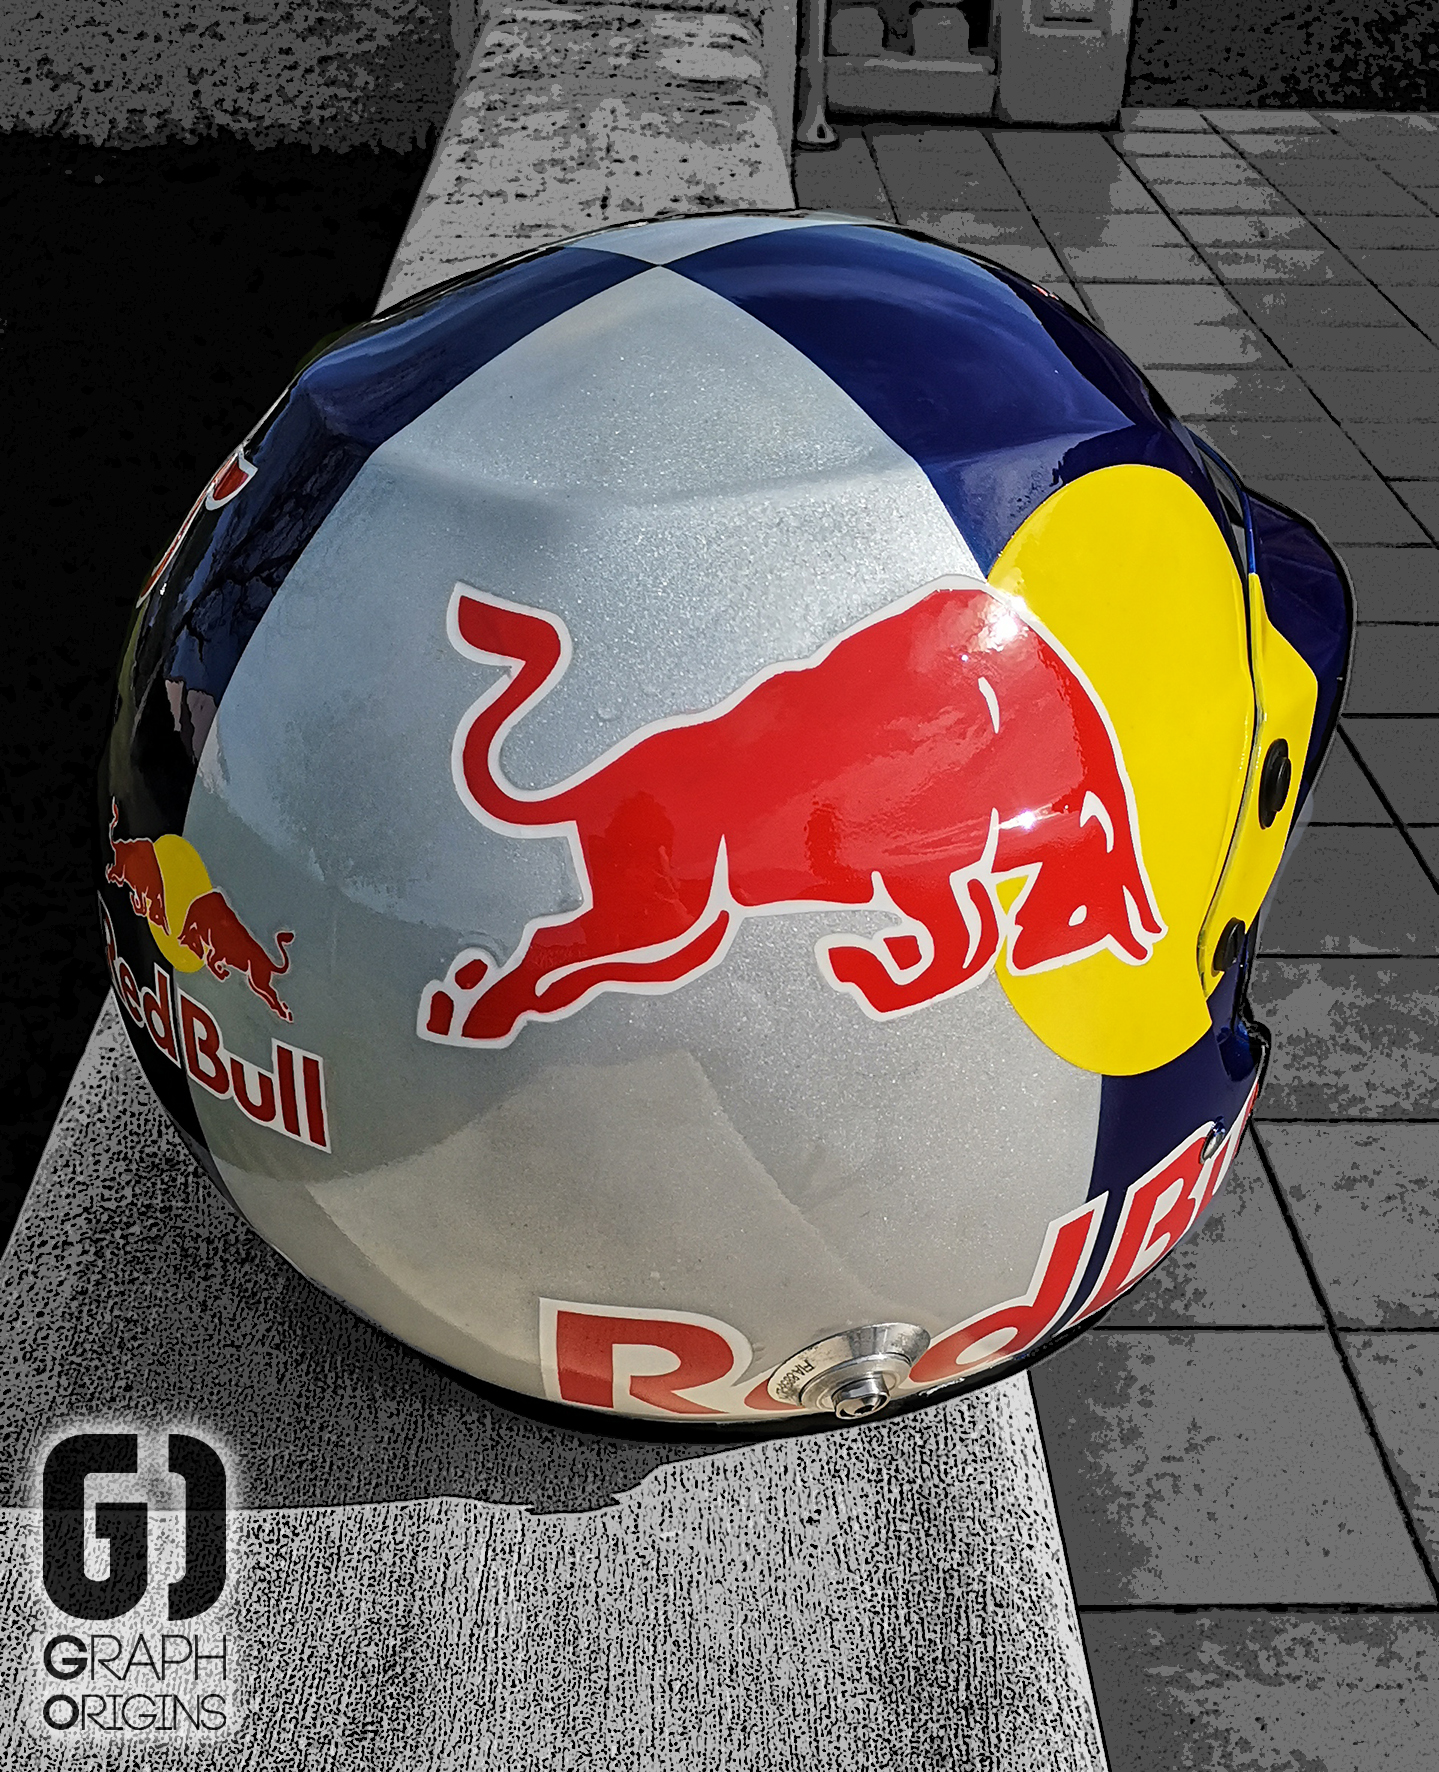 Casque Red Bull custom graph origins 2